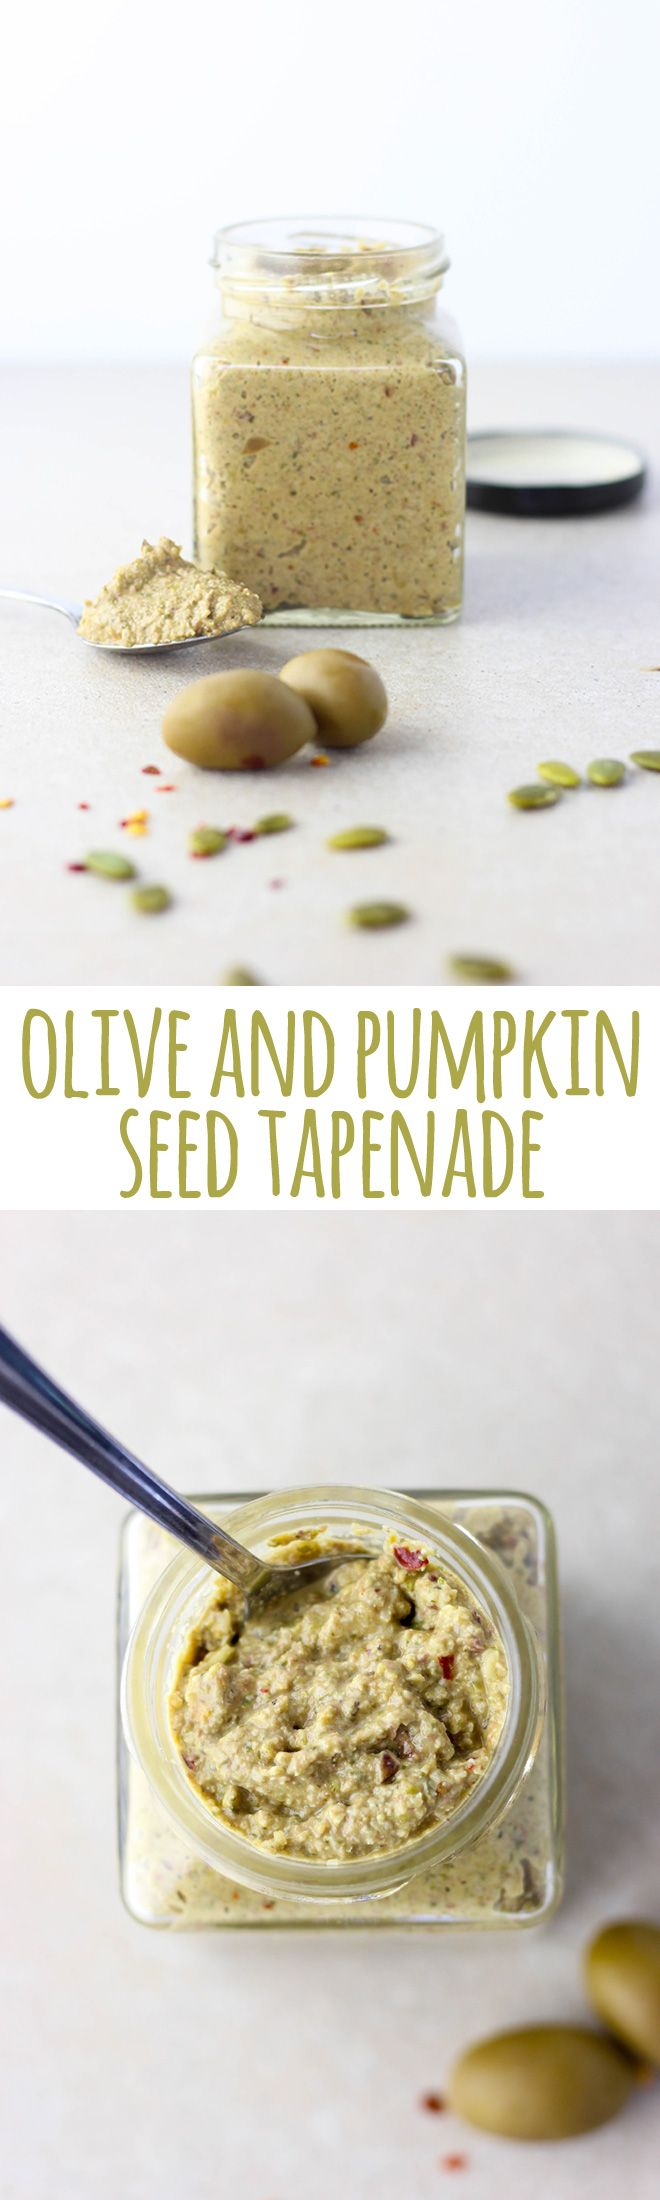 Olive and pumpkin seed tapenade